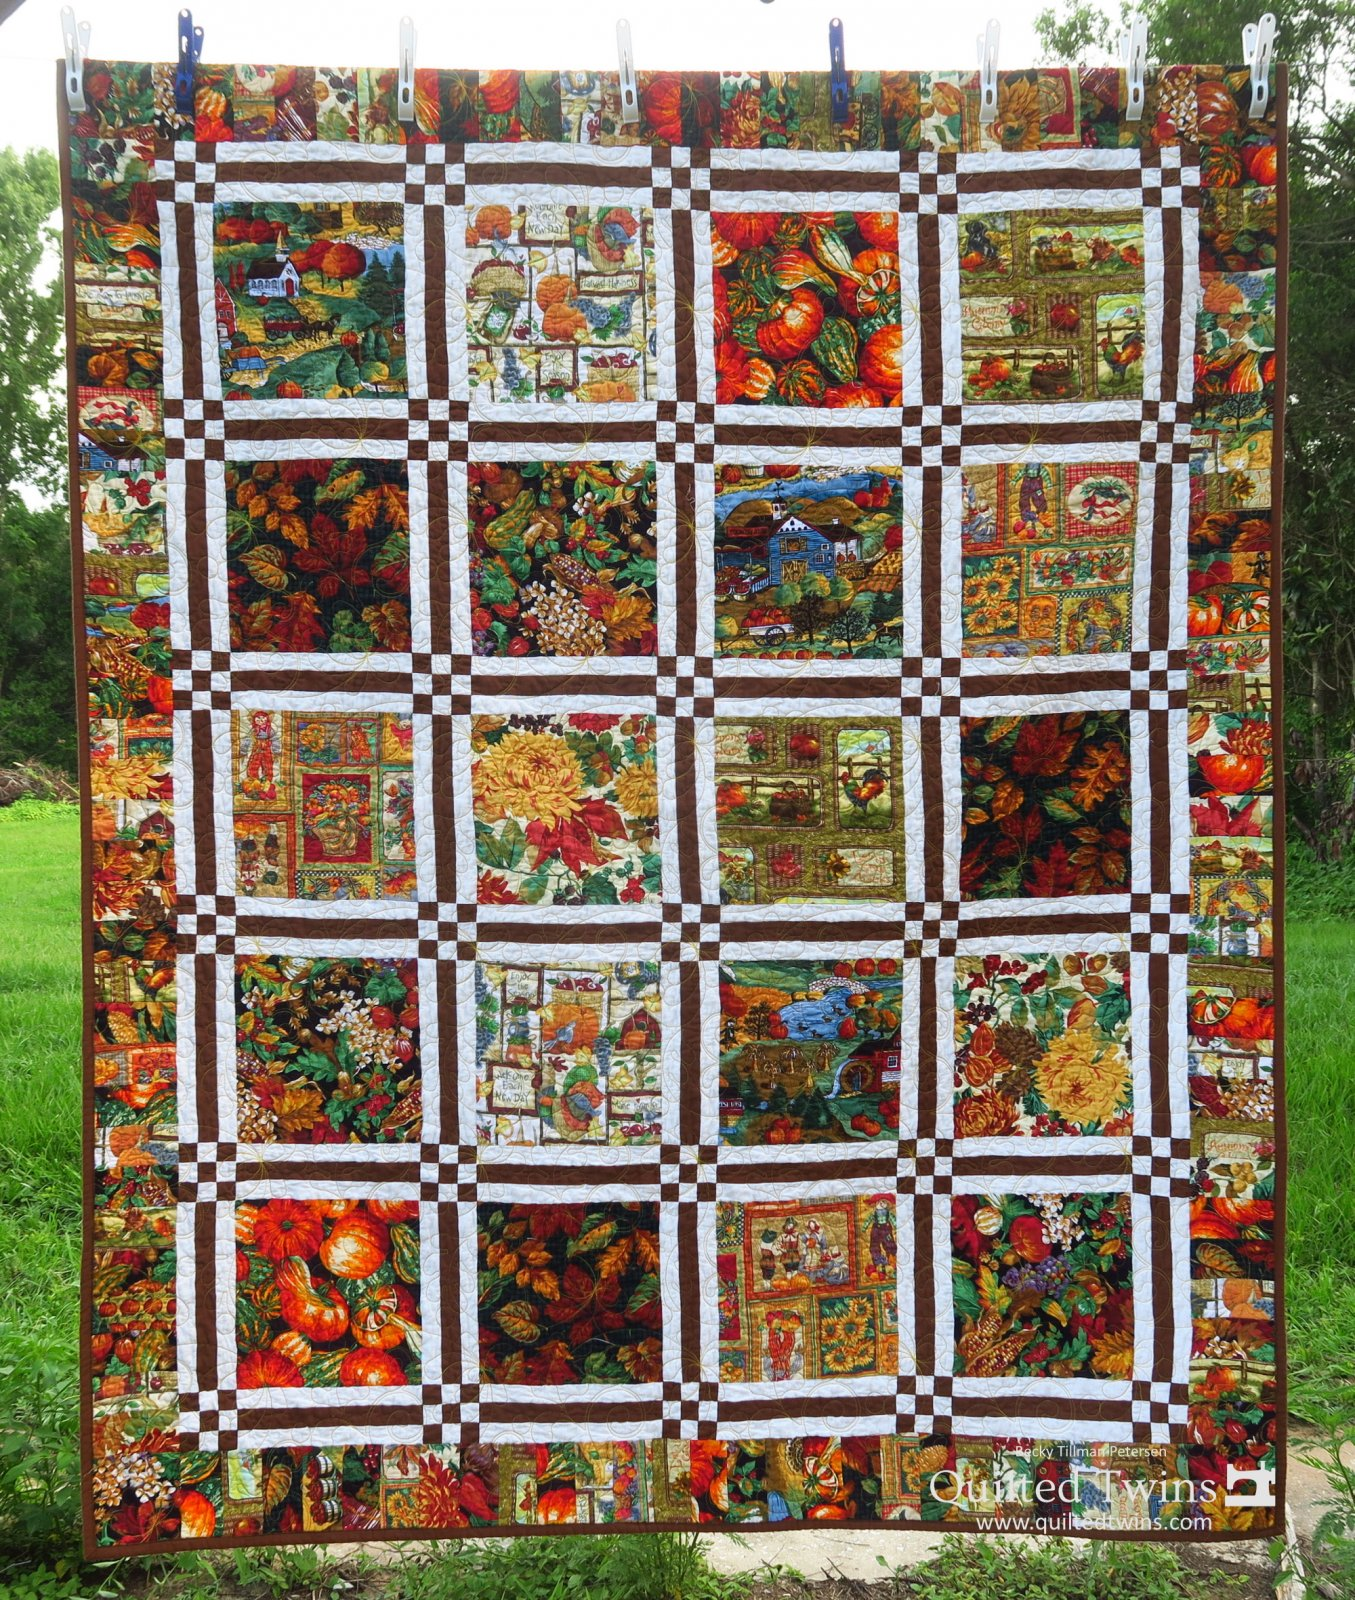 Show Off Fall Lap Quilt Kit - Panel, Pattern, Fabric for Top and Binding